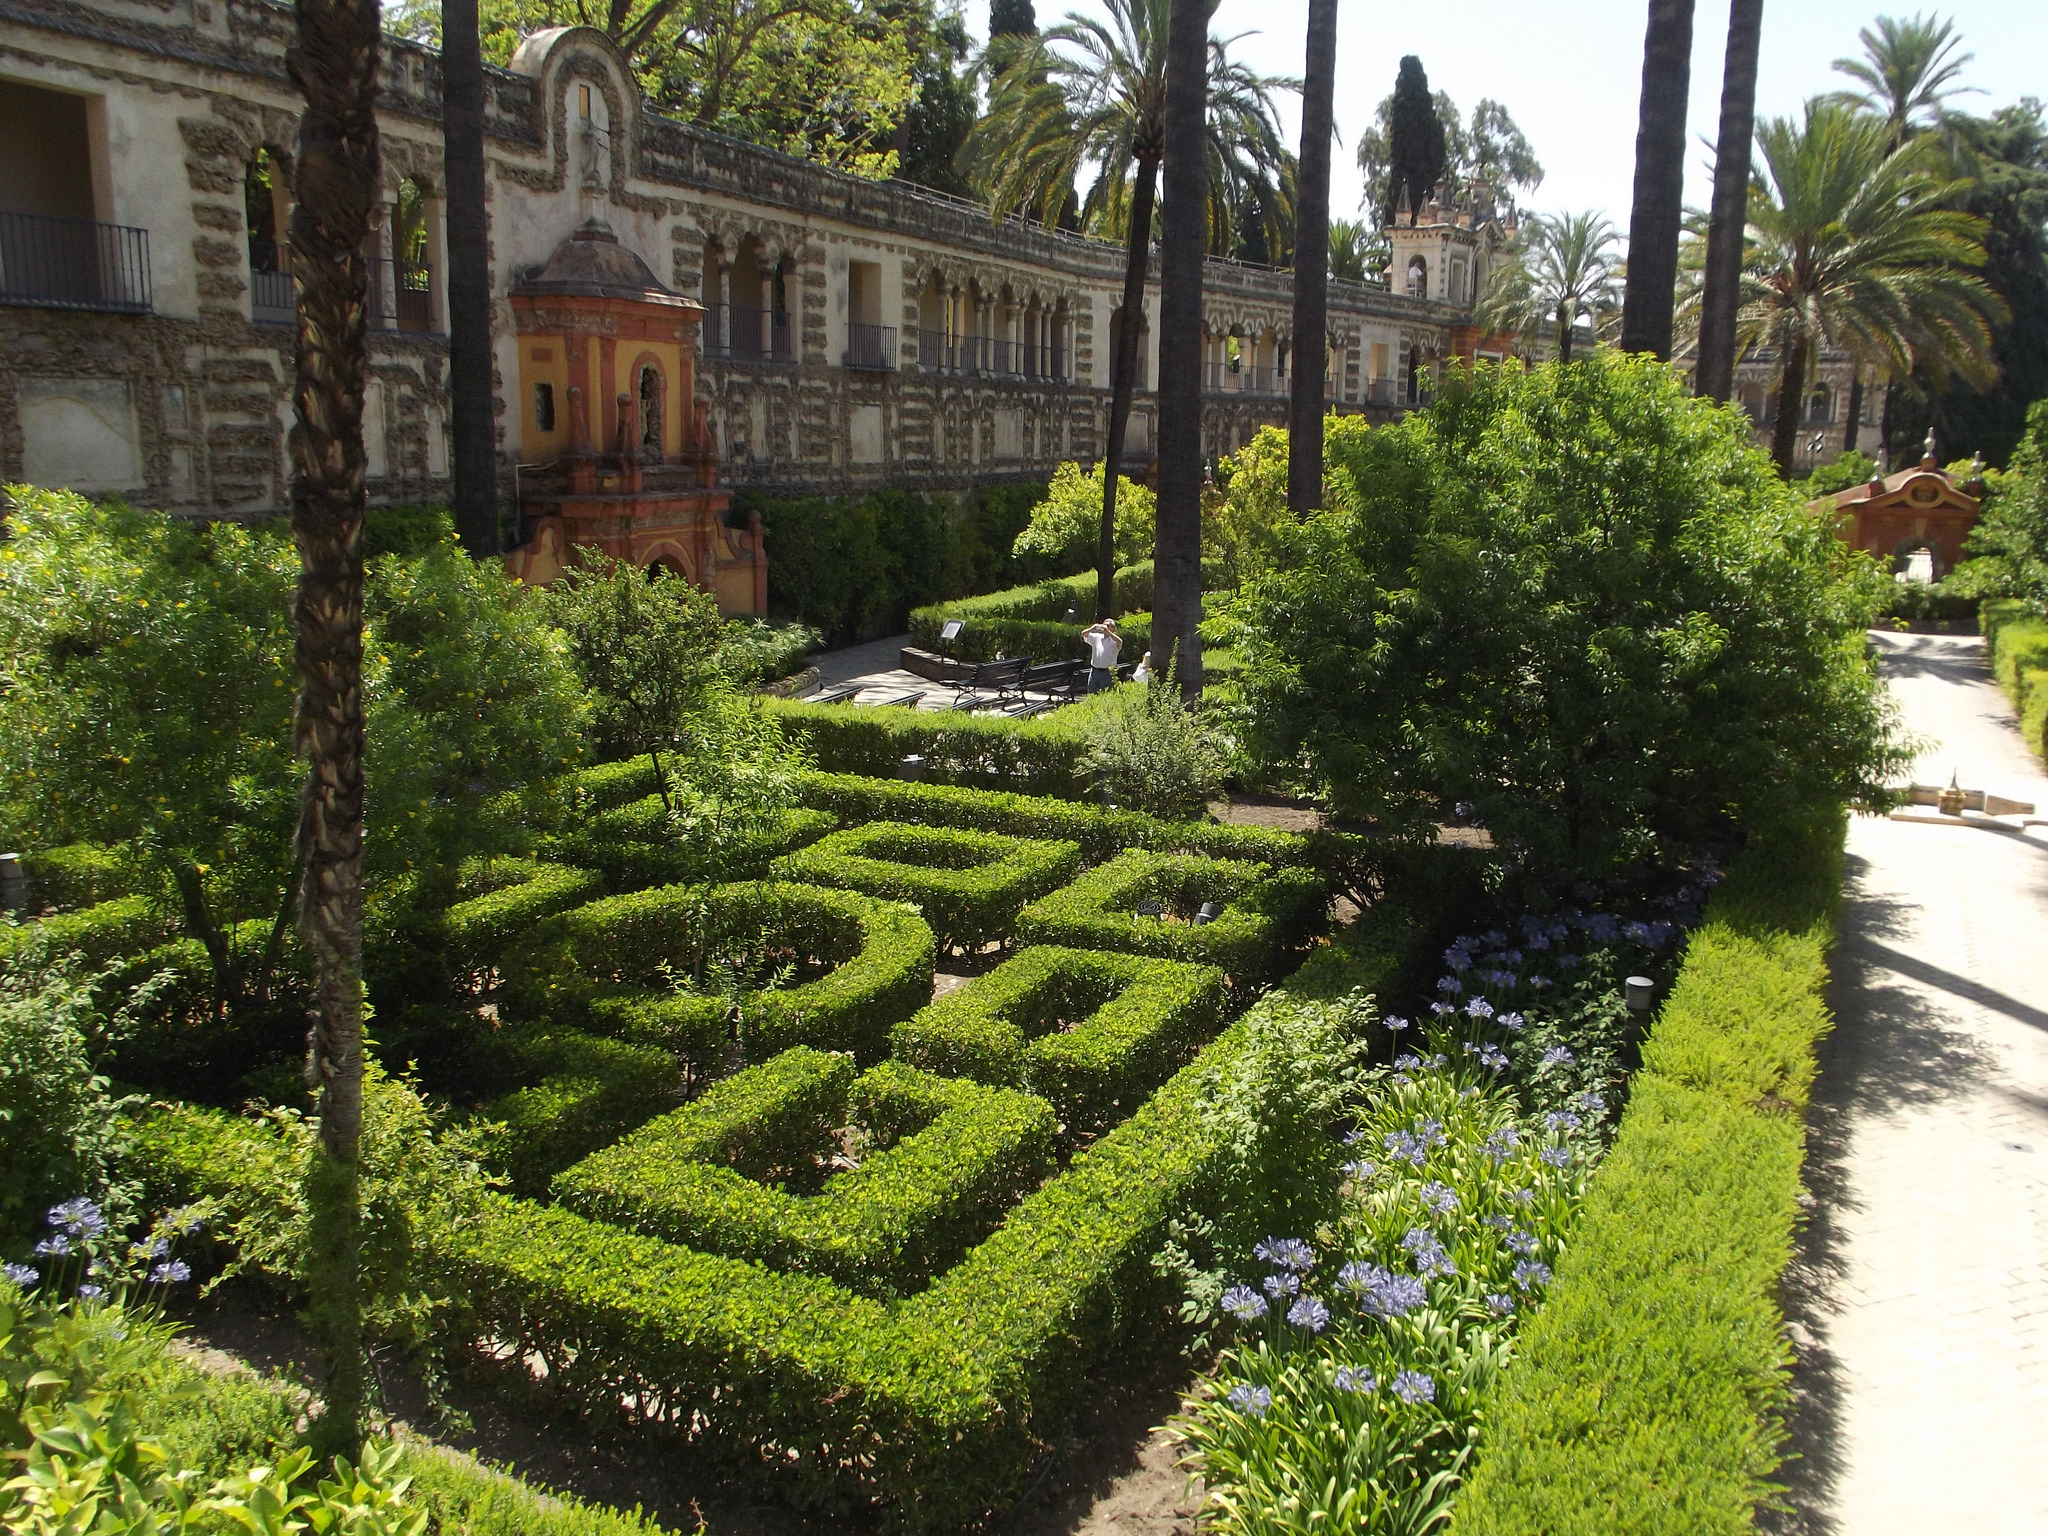 Alc zar of seville palace in spain thousand wonders for Jardines sevilla